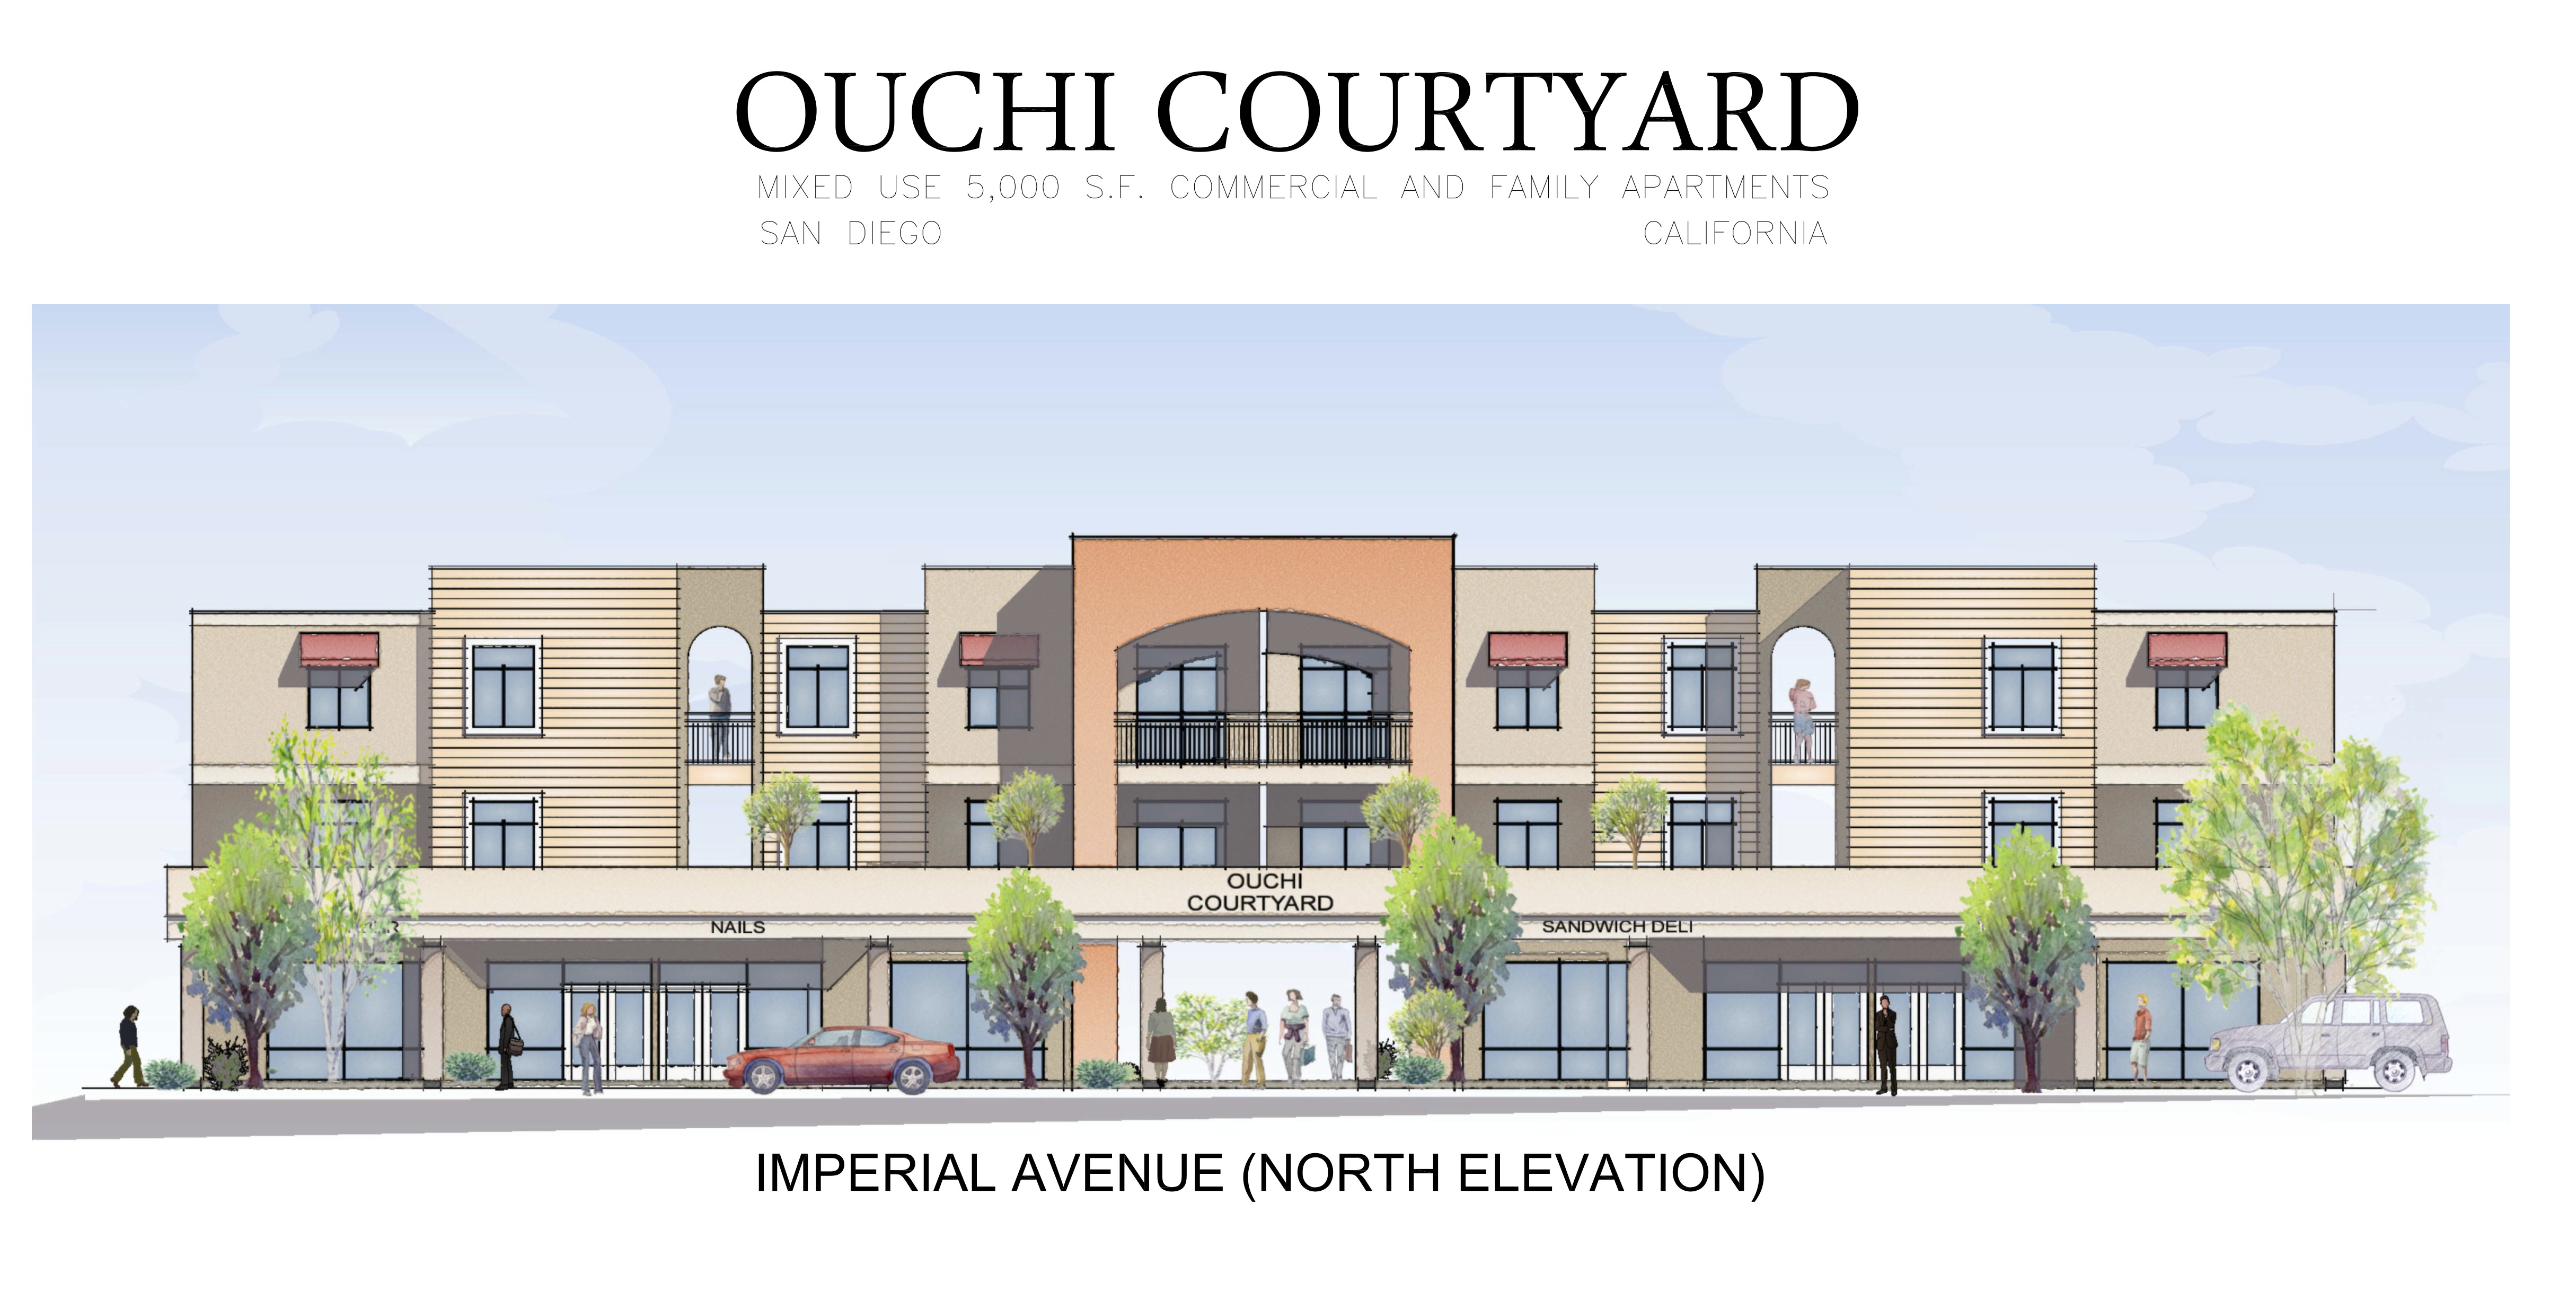 Rendering of the Ouchi Courtyard